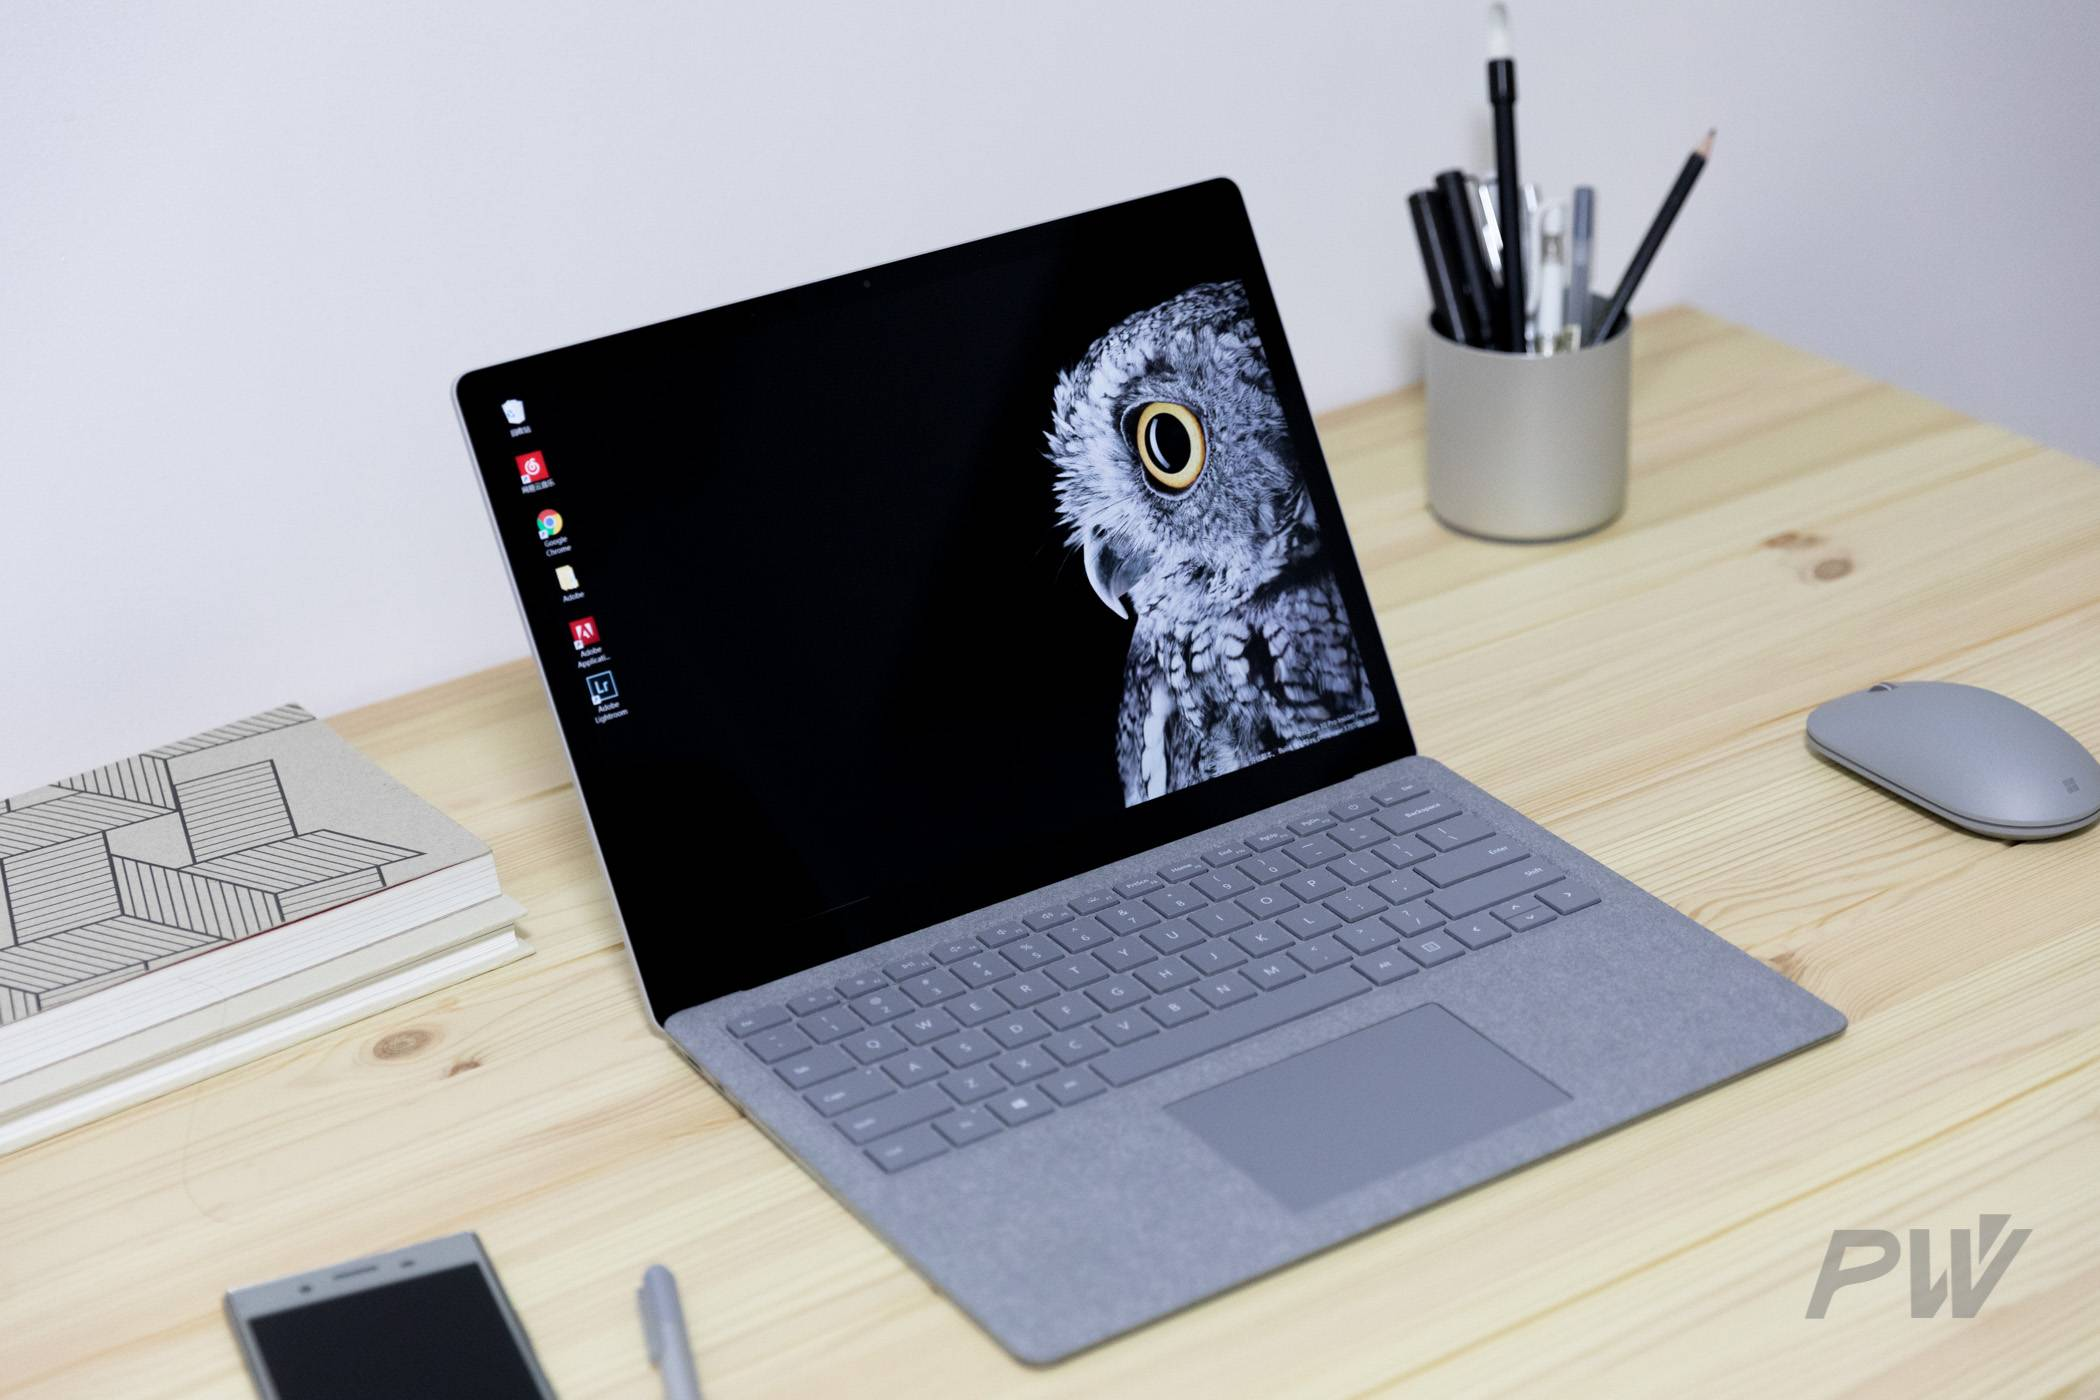 Microsoft Surface Laptop Photo By Hao Ying